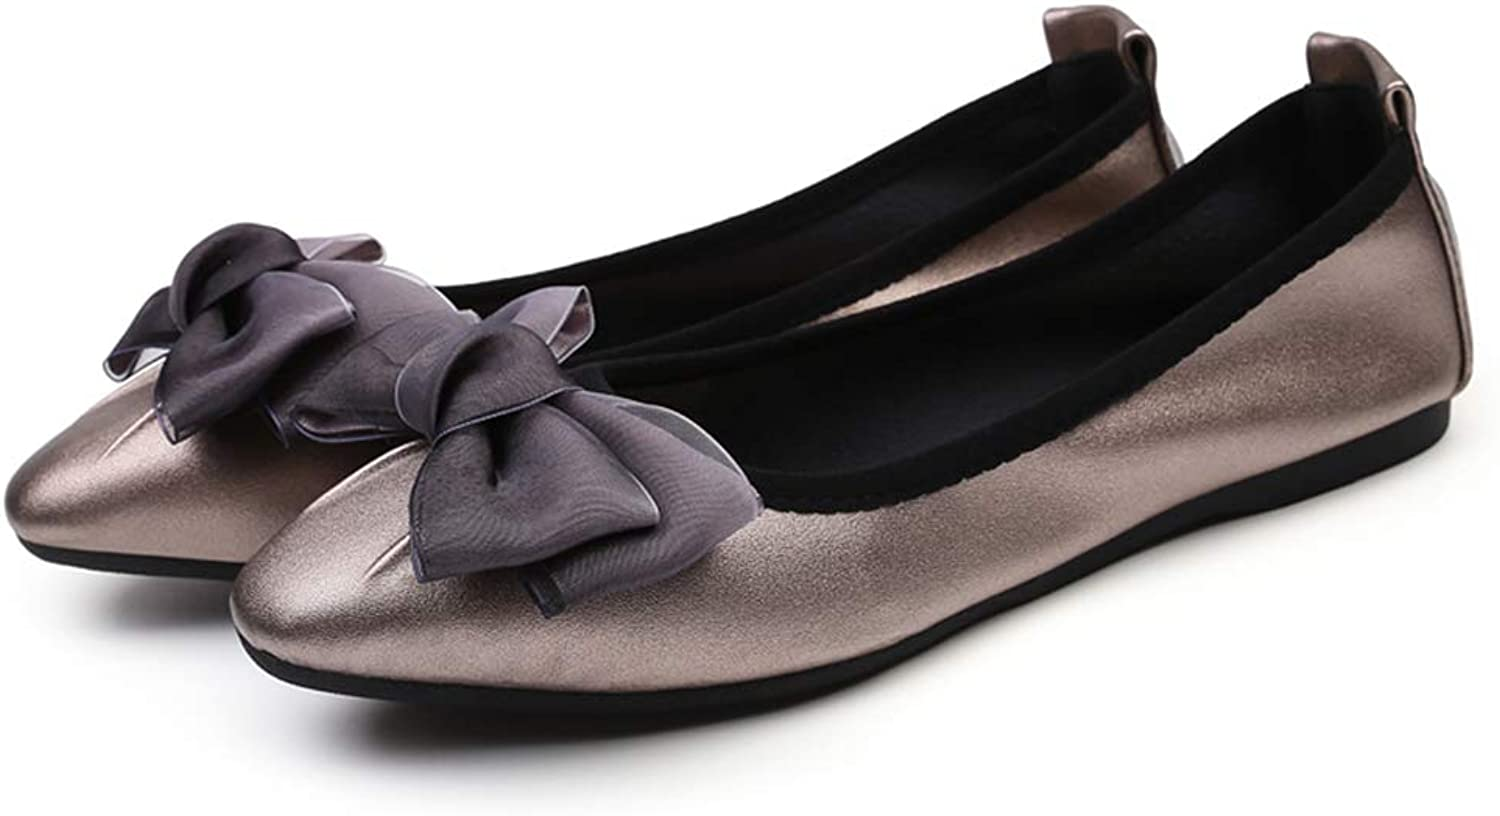 Bon Soir Women Flat shoes Comfortable Slip On Casual Comfortable Flats,Ballet Flats